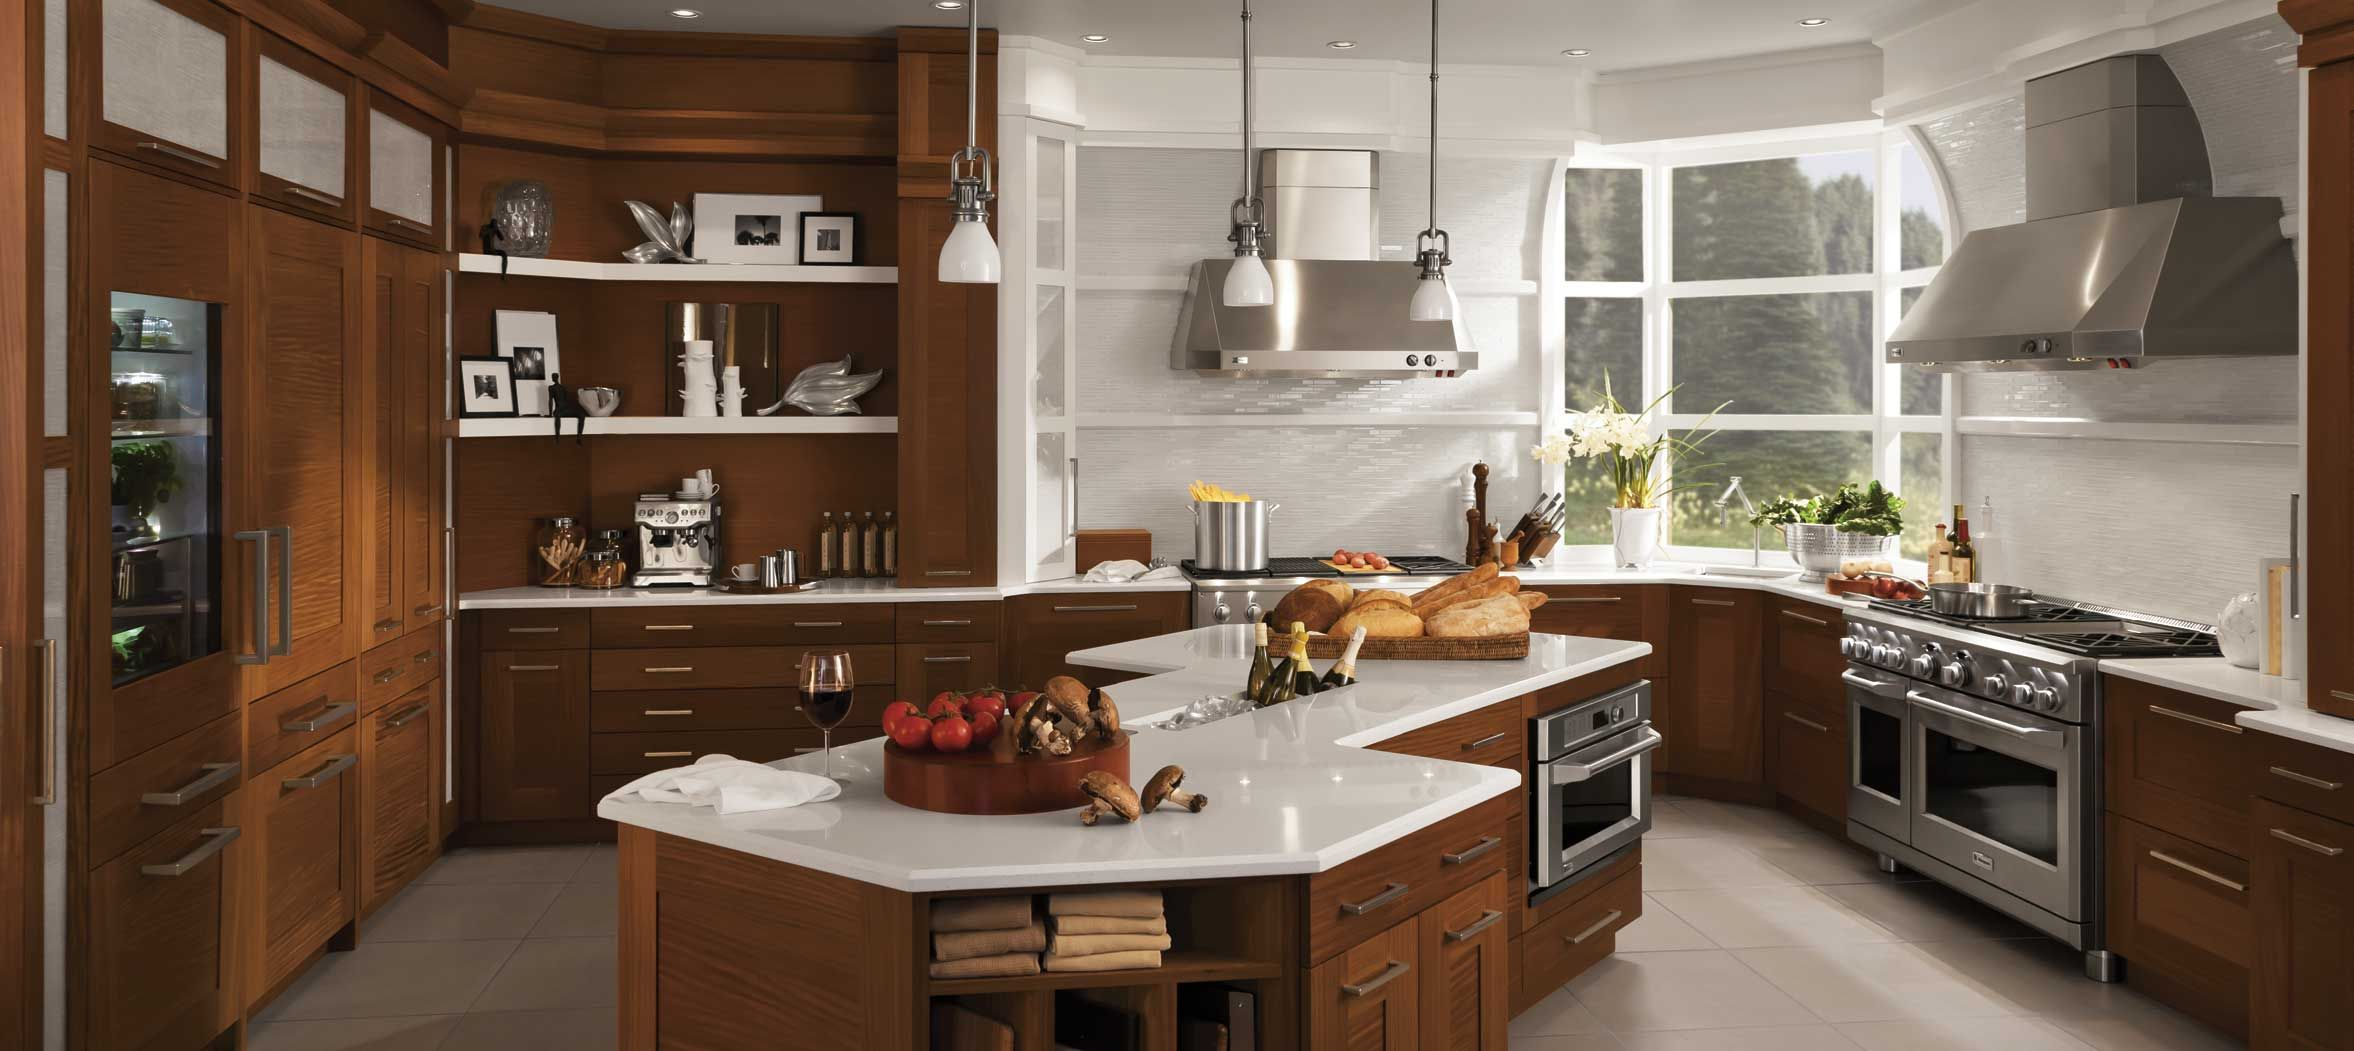 The different kitchen layouts bandidusa home design preferance - Bentwood Of Dallas Luxury Kitchen Showroom Whatever Your Unique Vision For Your Kitchen Bath Or Other Space In Your Home We Can Transform It Into A